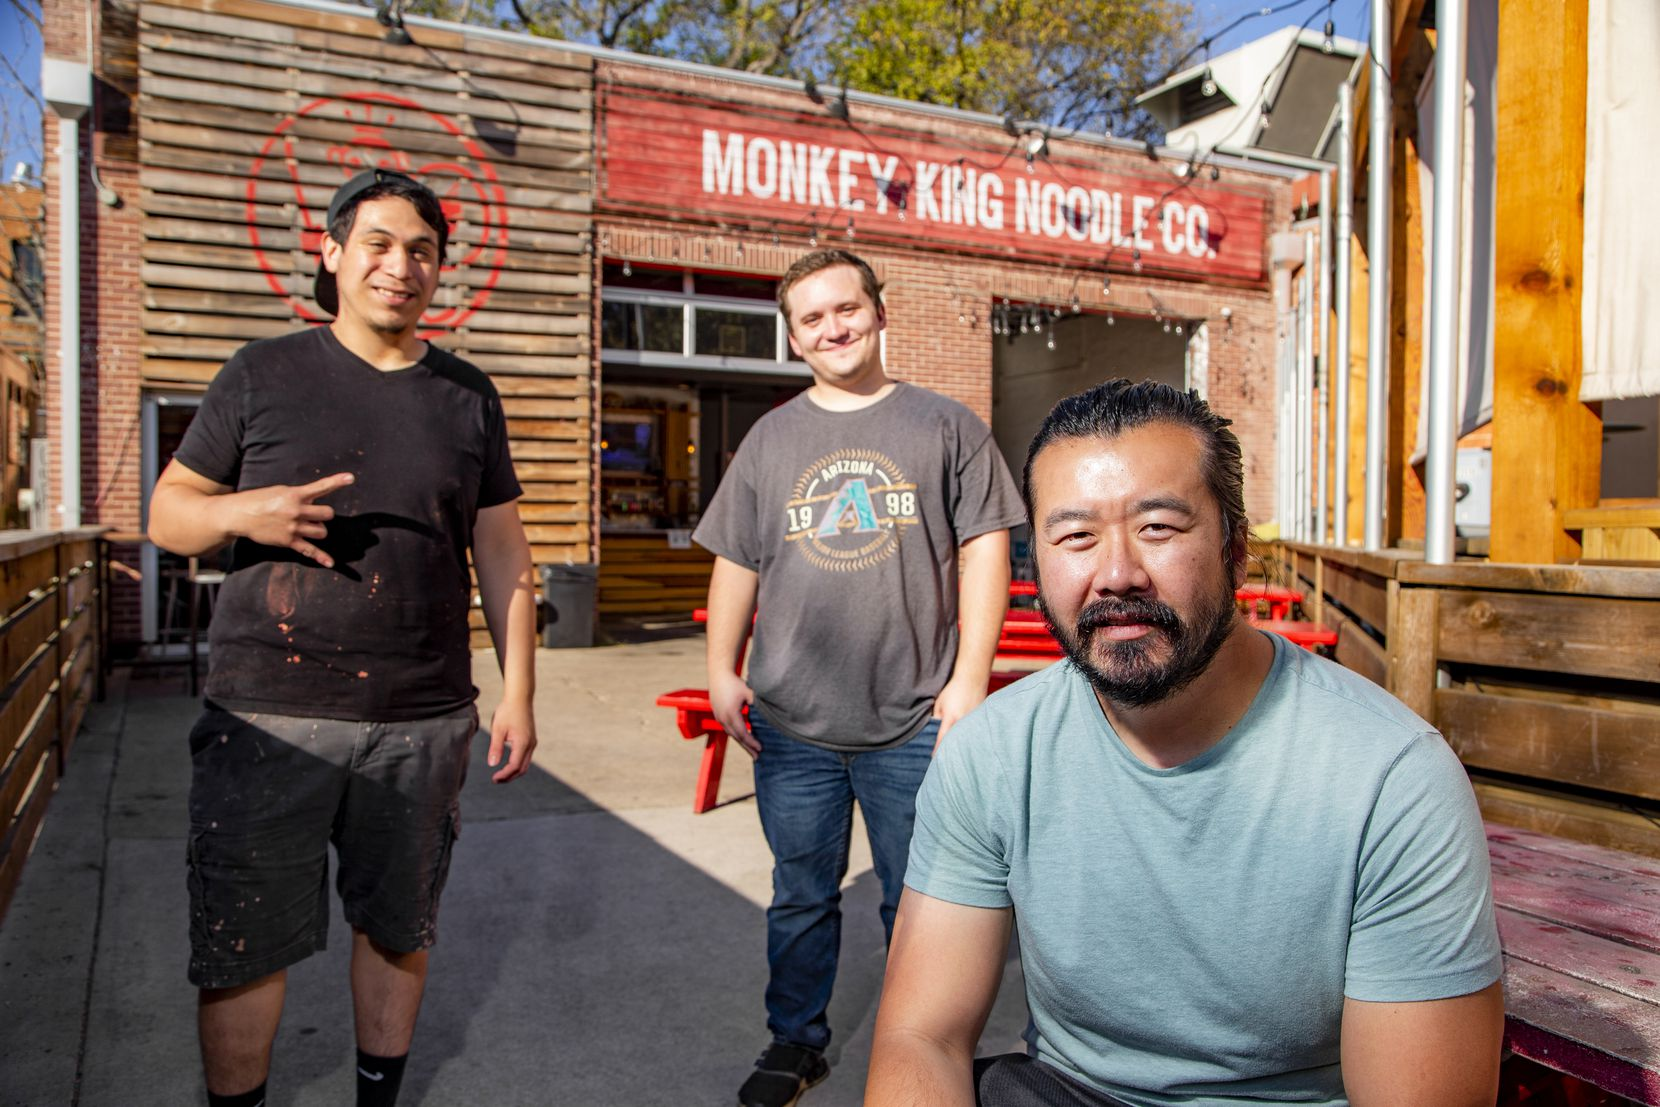 (L to R) Monkey King Noodle Company Kitchen Manager Kristian Pena, Front of House manager Evan Mitzel and Operating Owner Andrew Chen at the Deep Ellum location